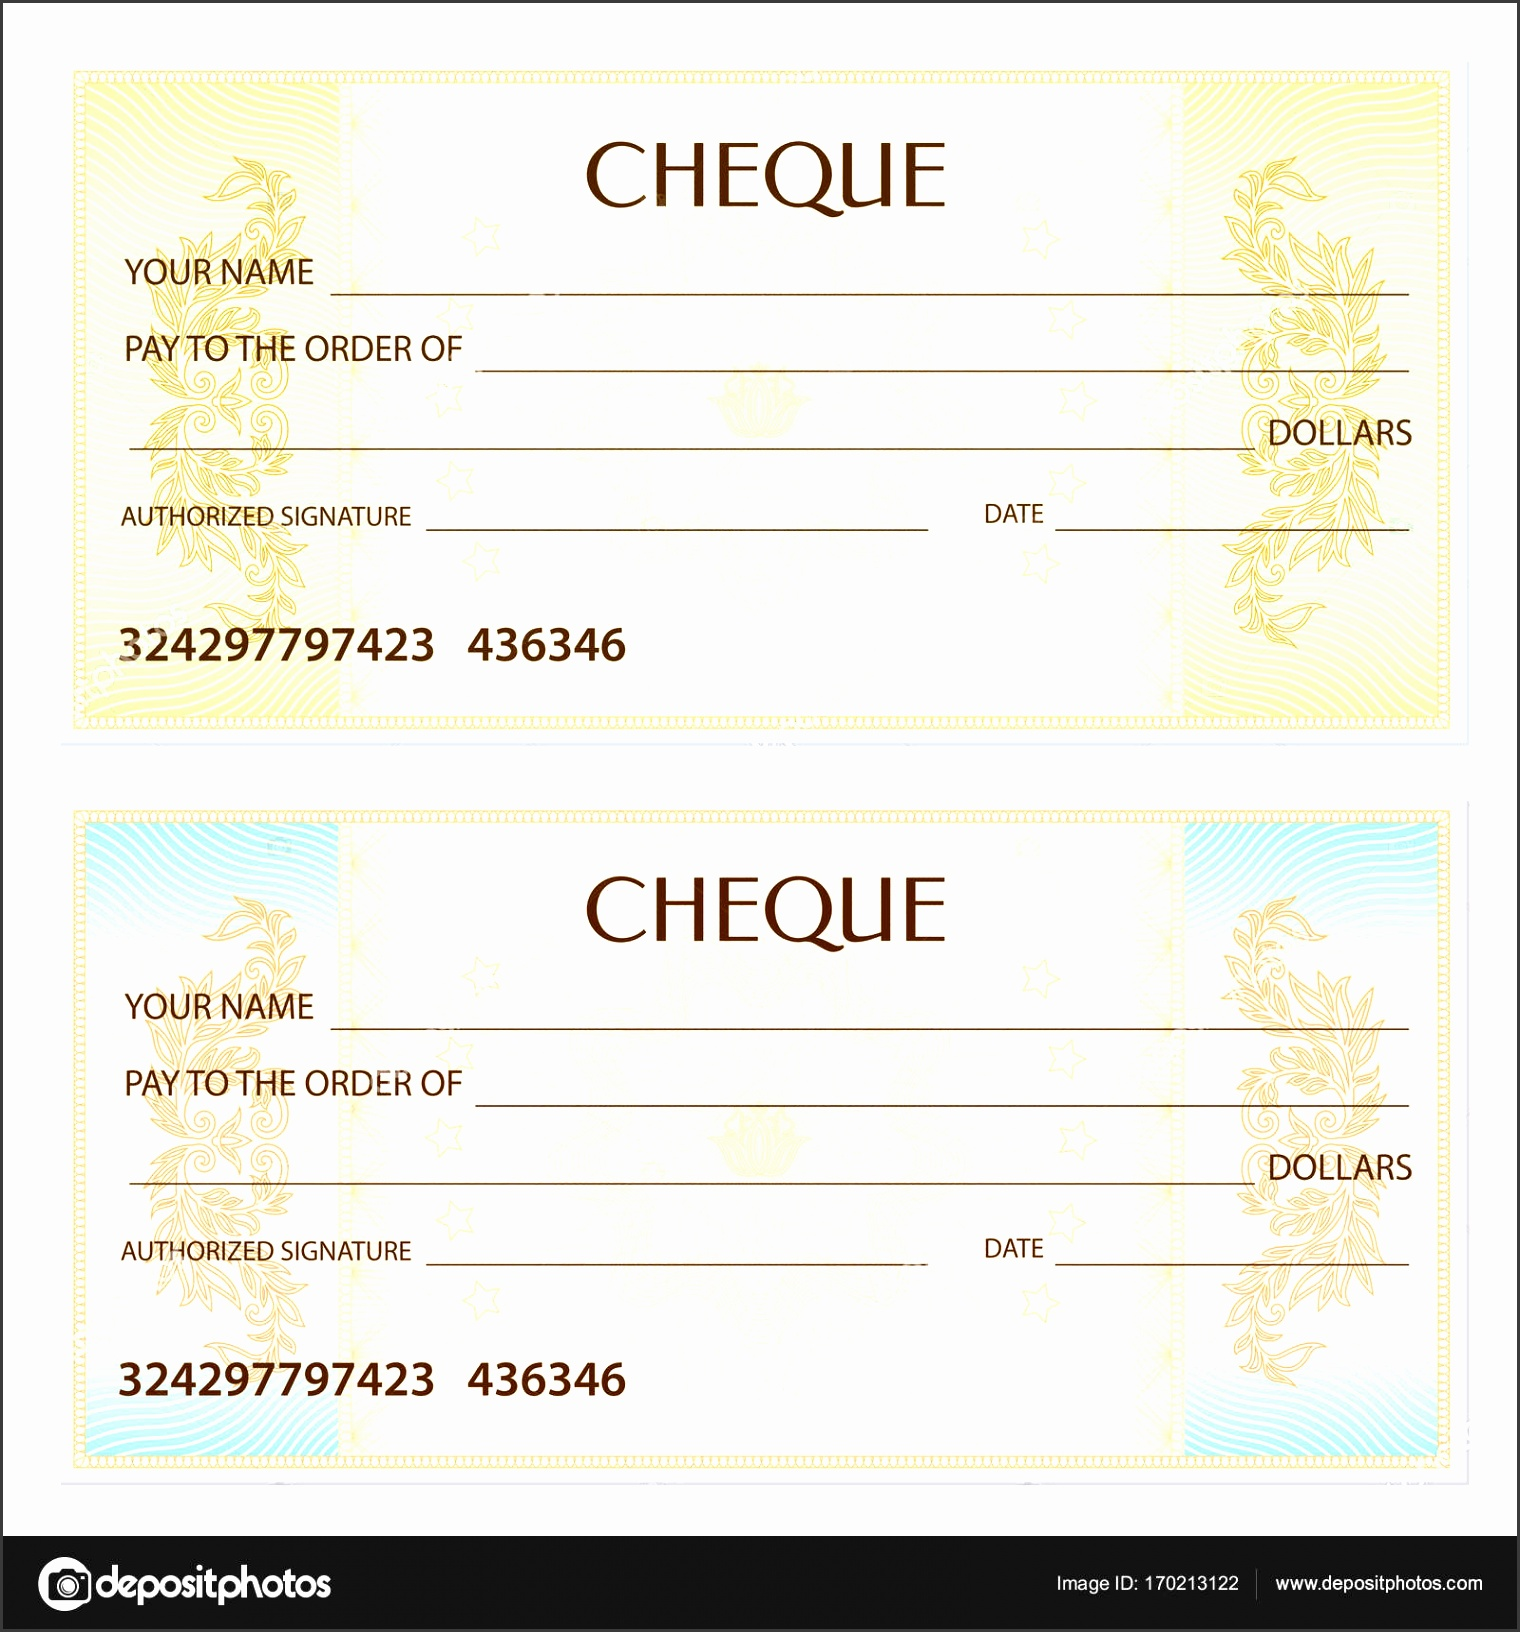 Check cheque Chequebook Template Guilloche Pattern With Depositphotos Stock Illustration Check Cheque Chequebook